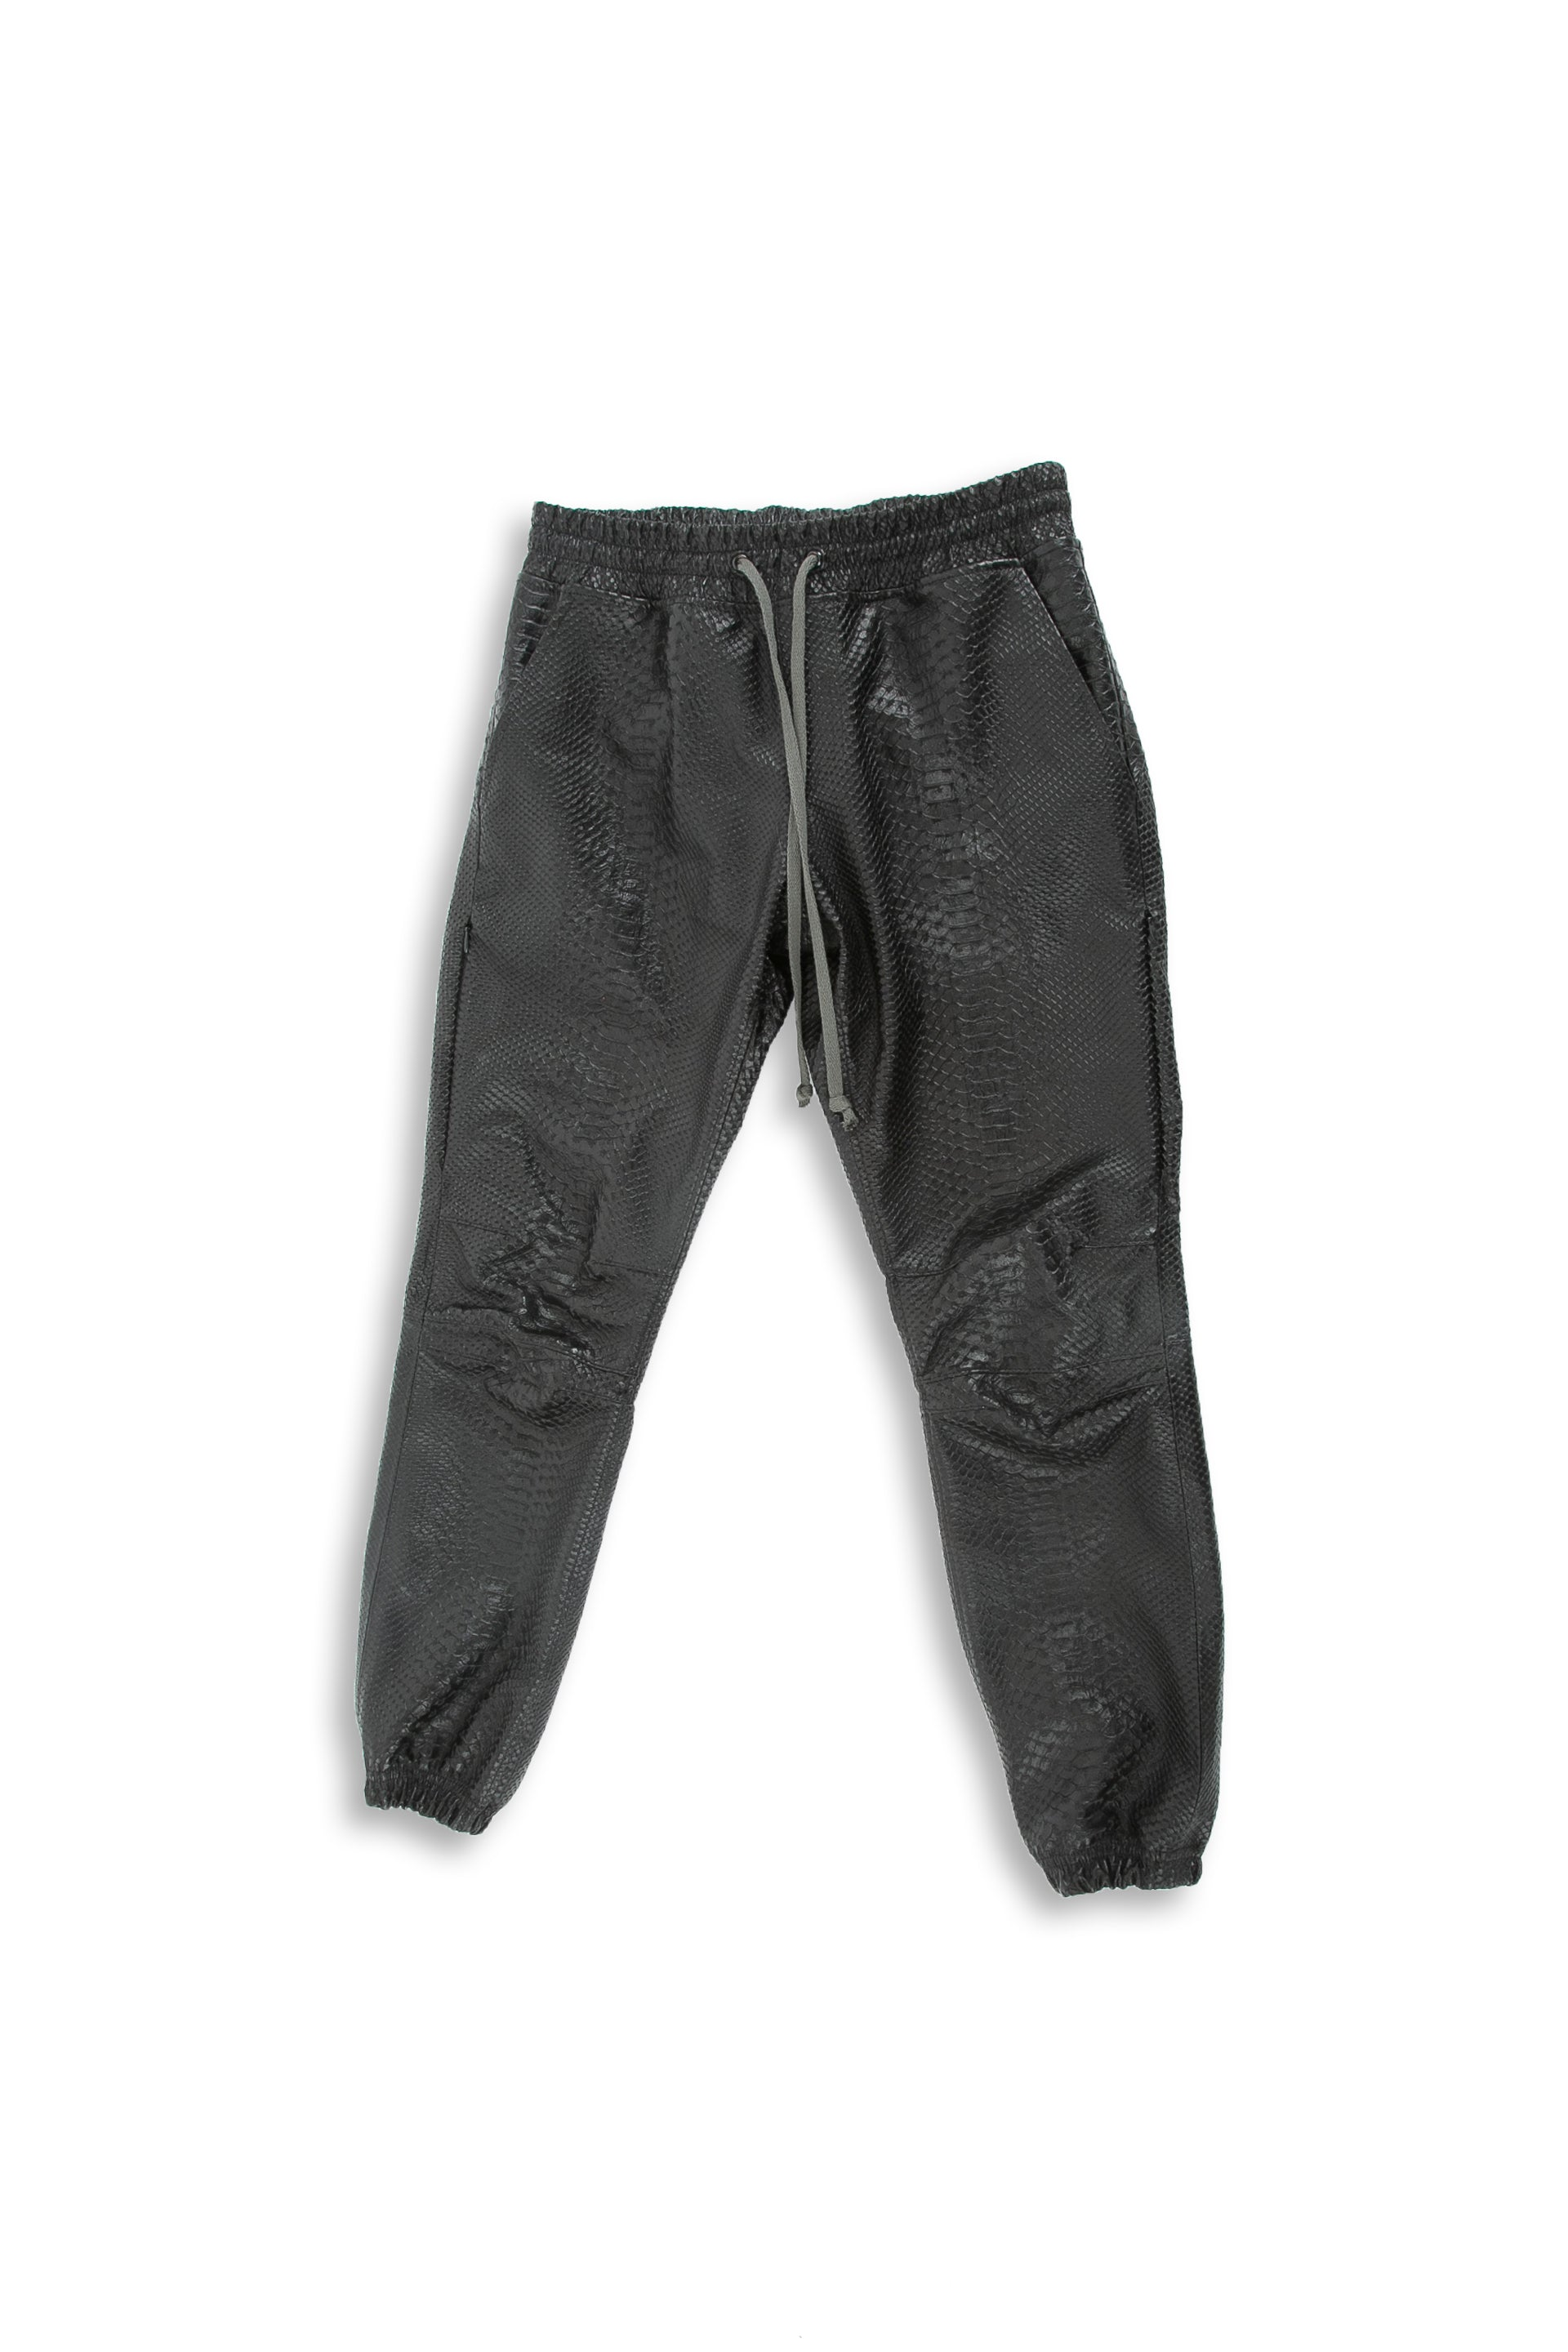 Front of Snakeskin Jogger in Black